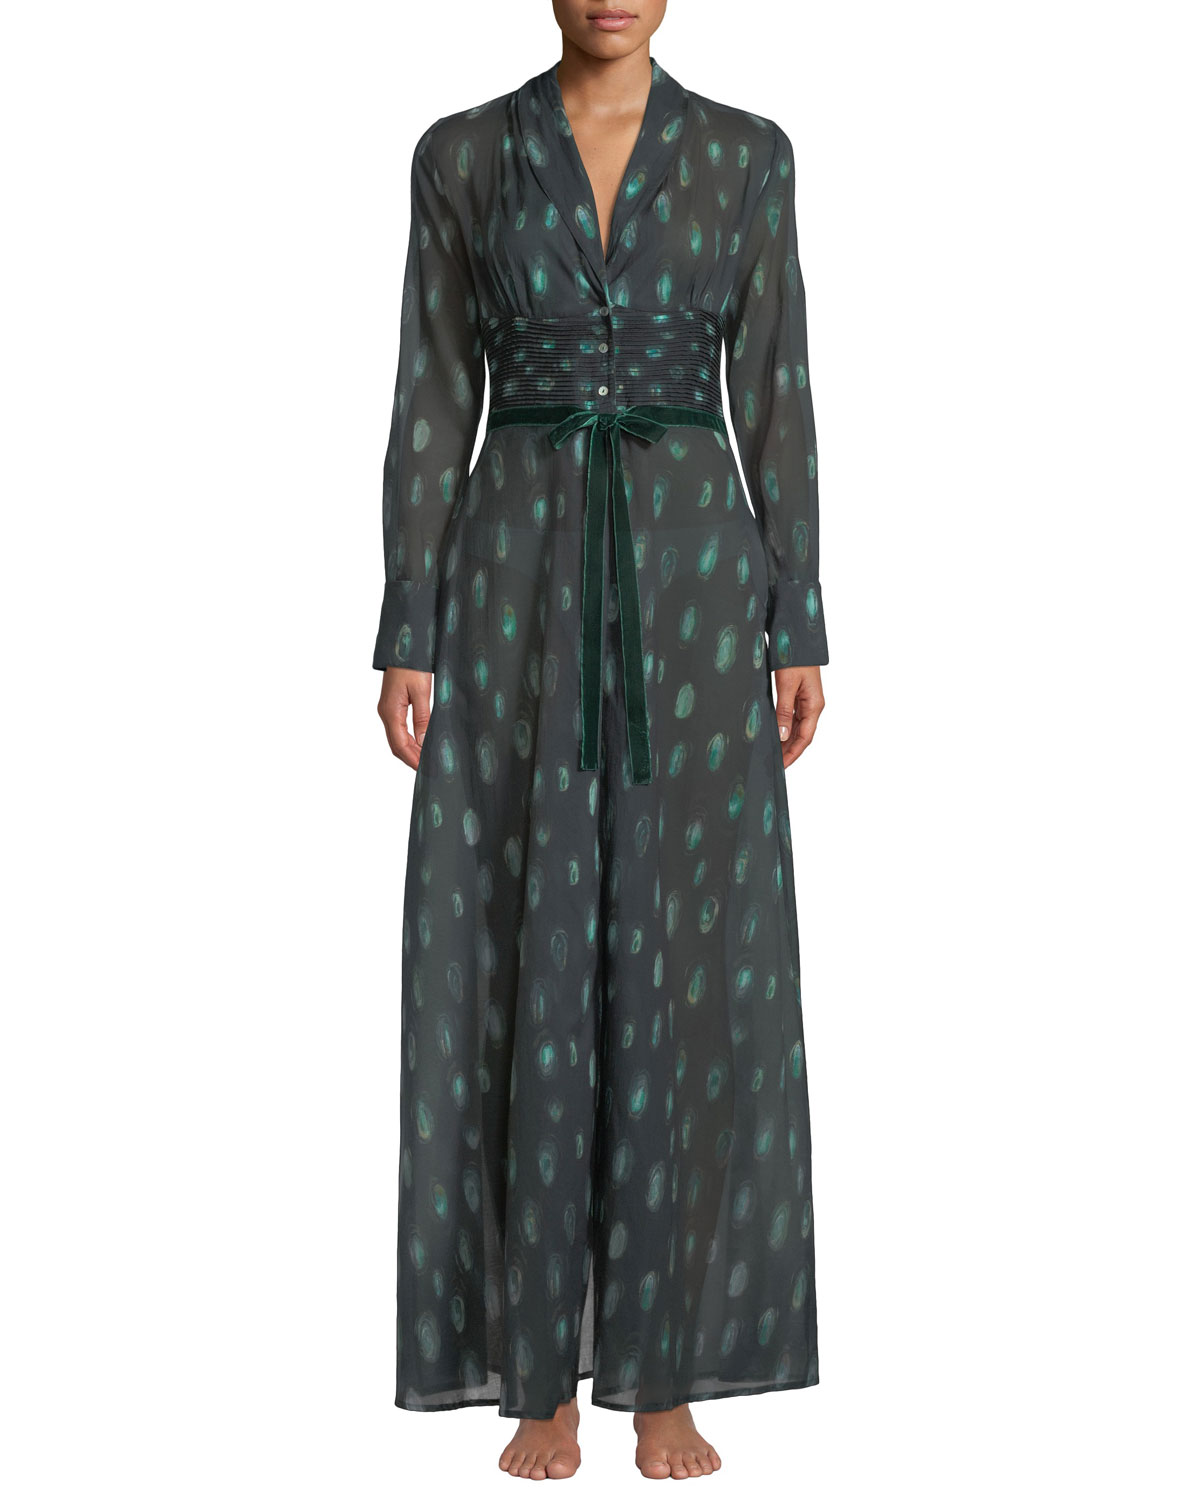 Peacock Feather-Print Cotton Robe in Green Pattern